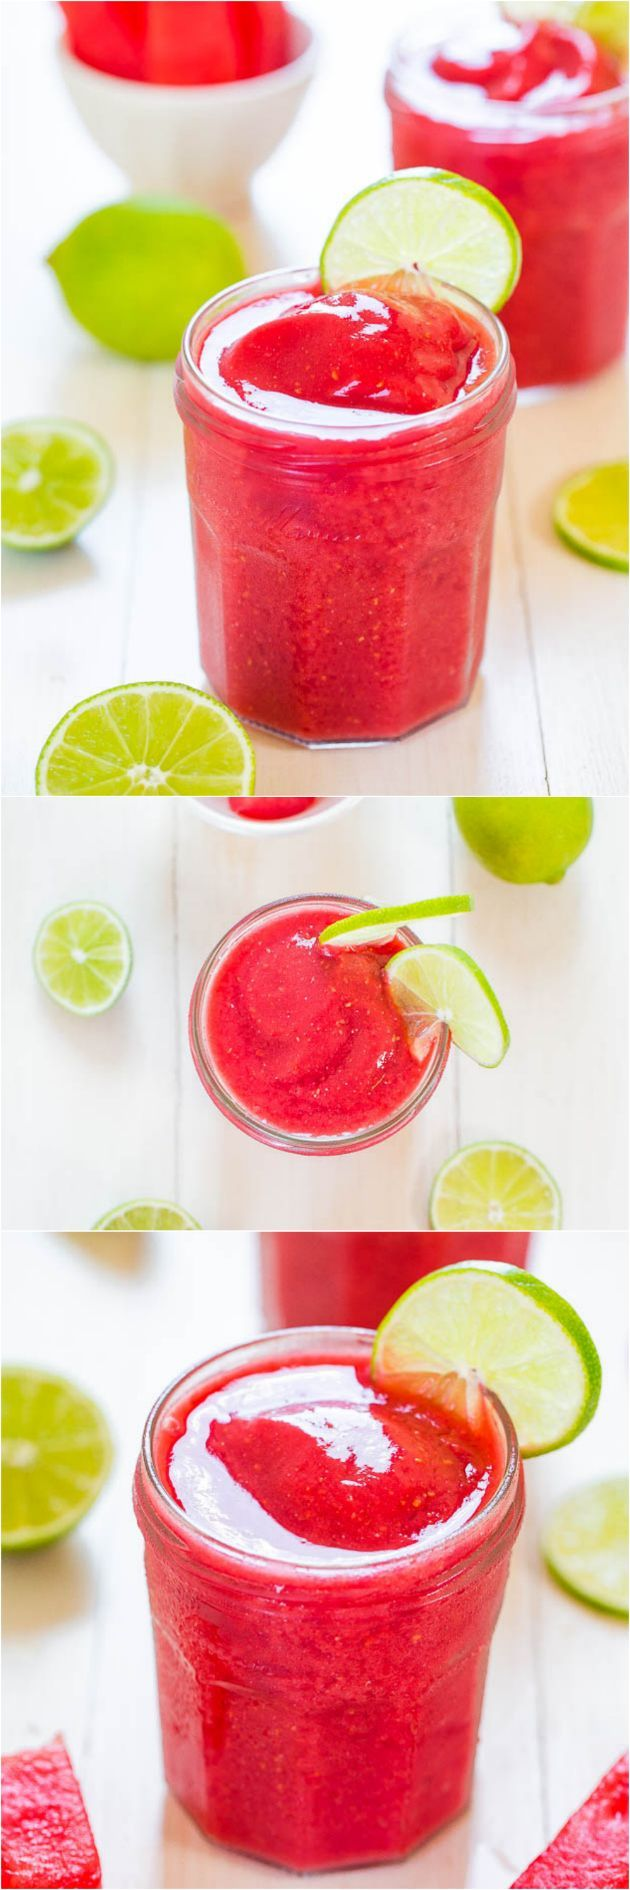 Watermelon Raspberry Slushies #watermelon #raspberry #slushy